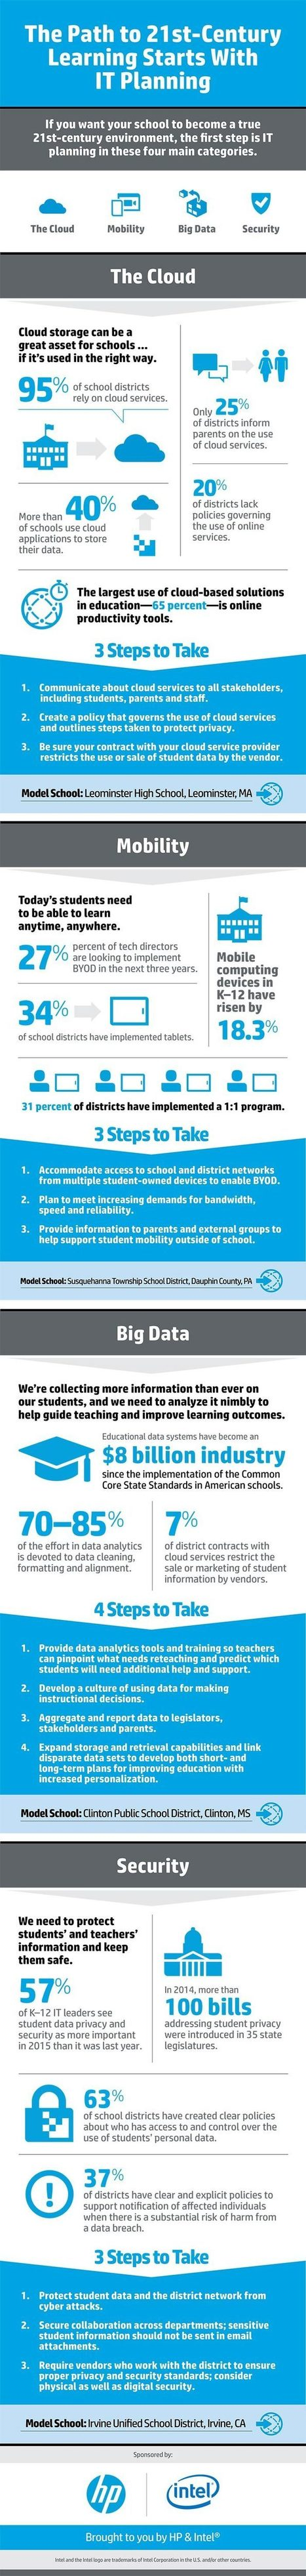 21st Century Learning Starts With IT Planning (Infographic) | Educación y TIC | Scoop.it